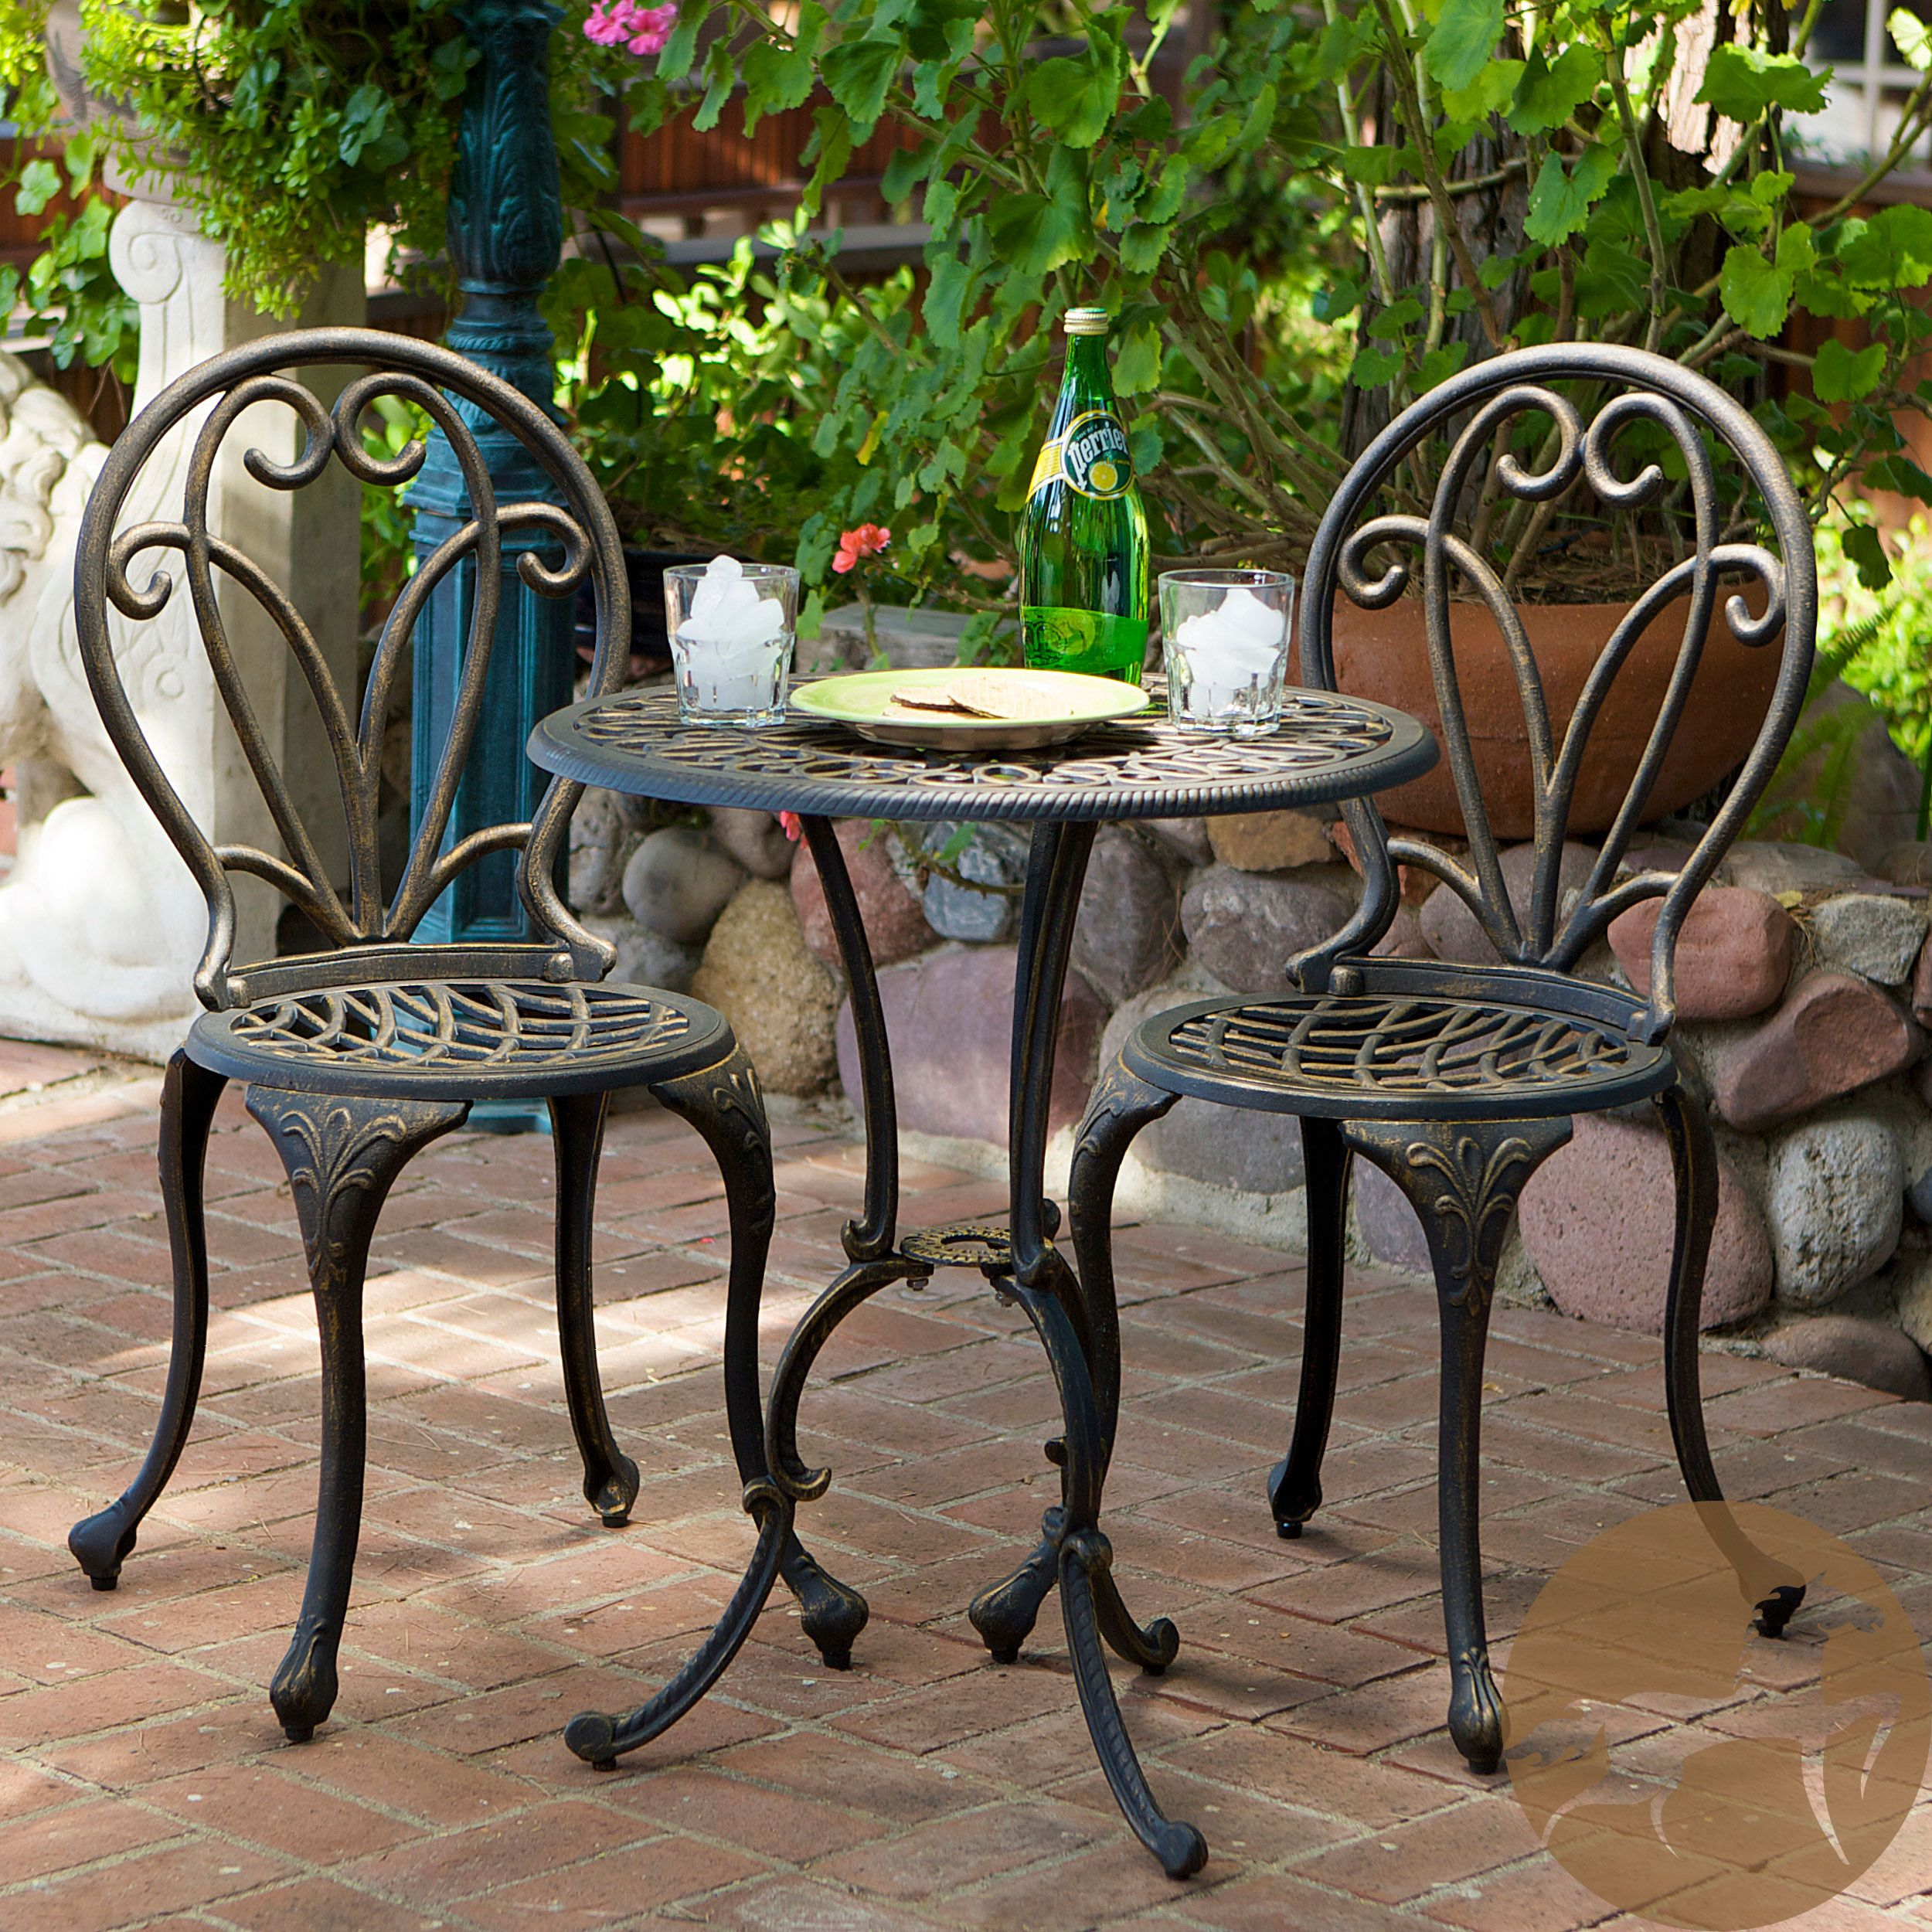 Metal Bistro Table And Chairs This French Style Outdoor Bistro Set Will Lend Classy Style To